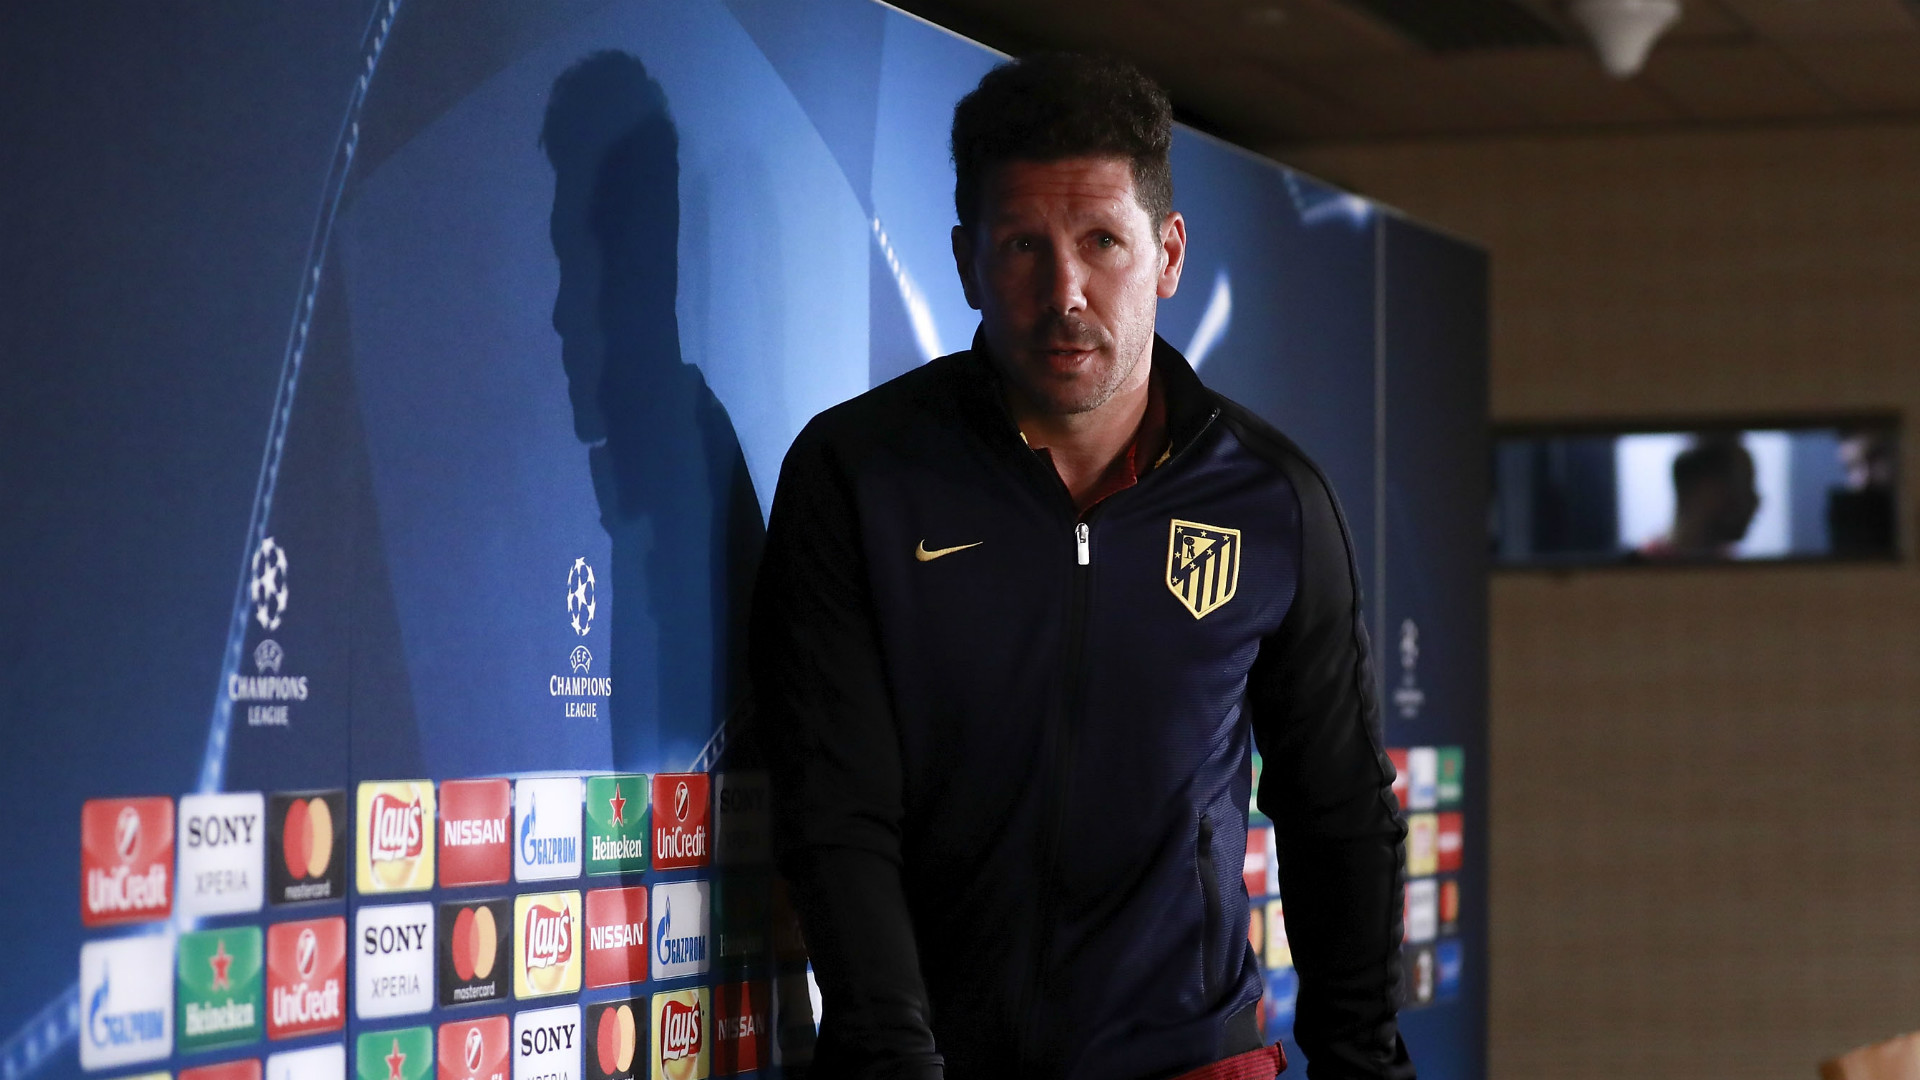 Diego Simeone Atletico Madrid before Real Madrid clash Champions League